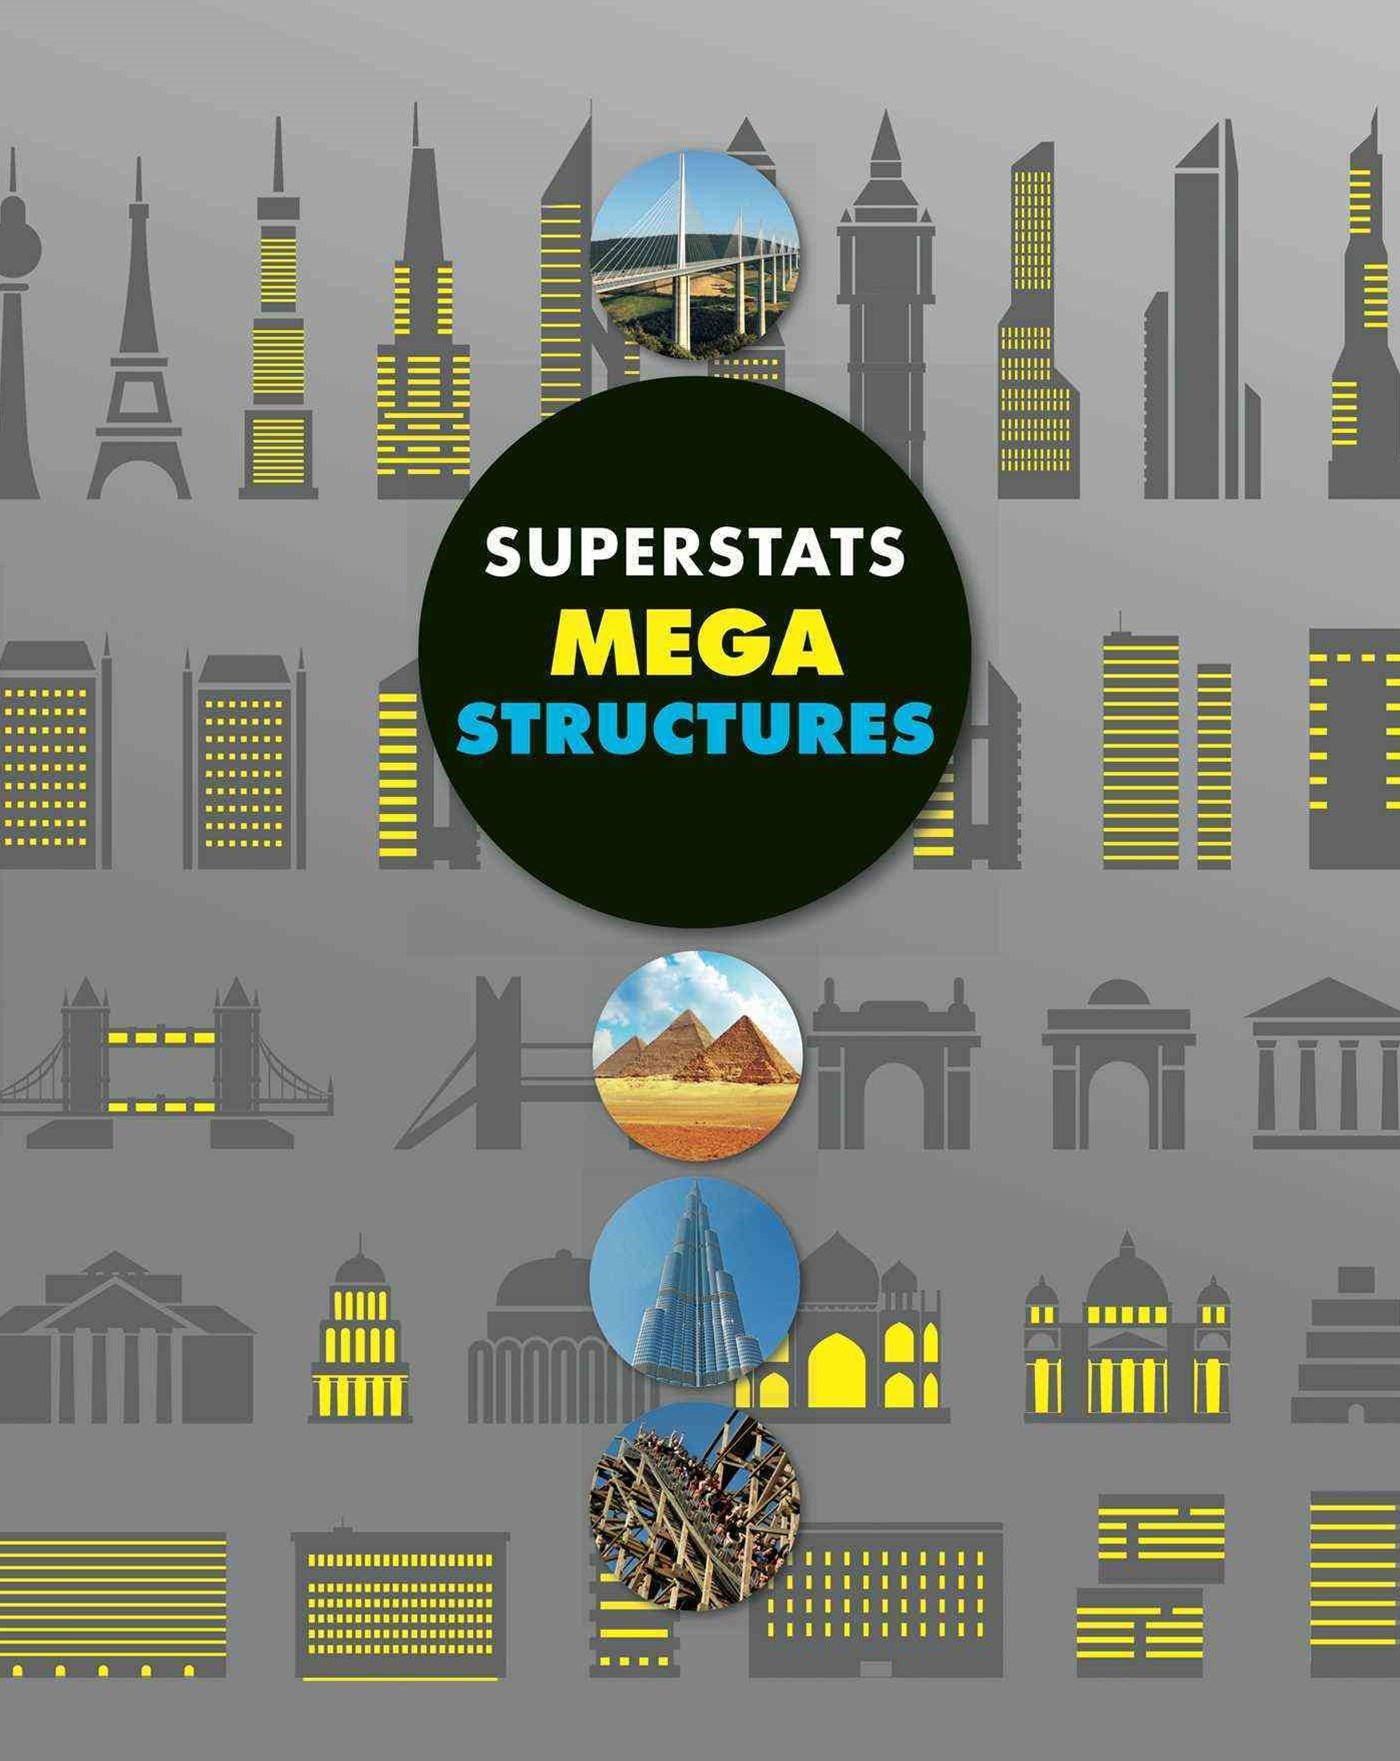 Superstats - Structures